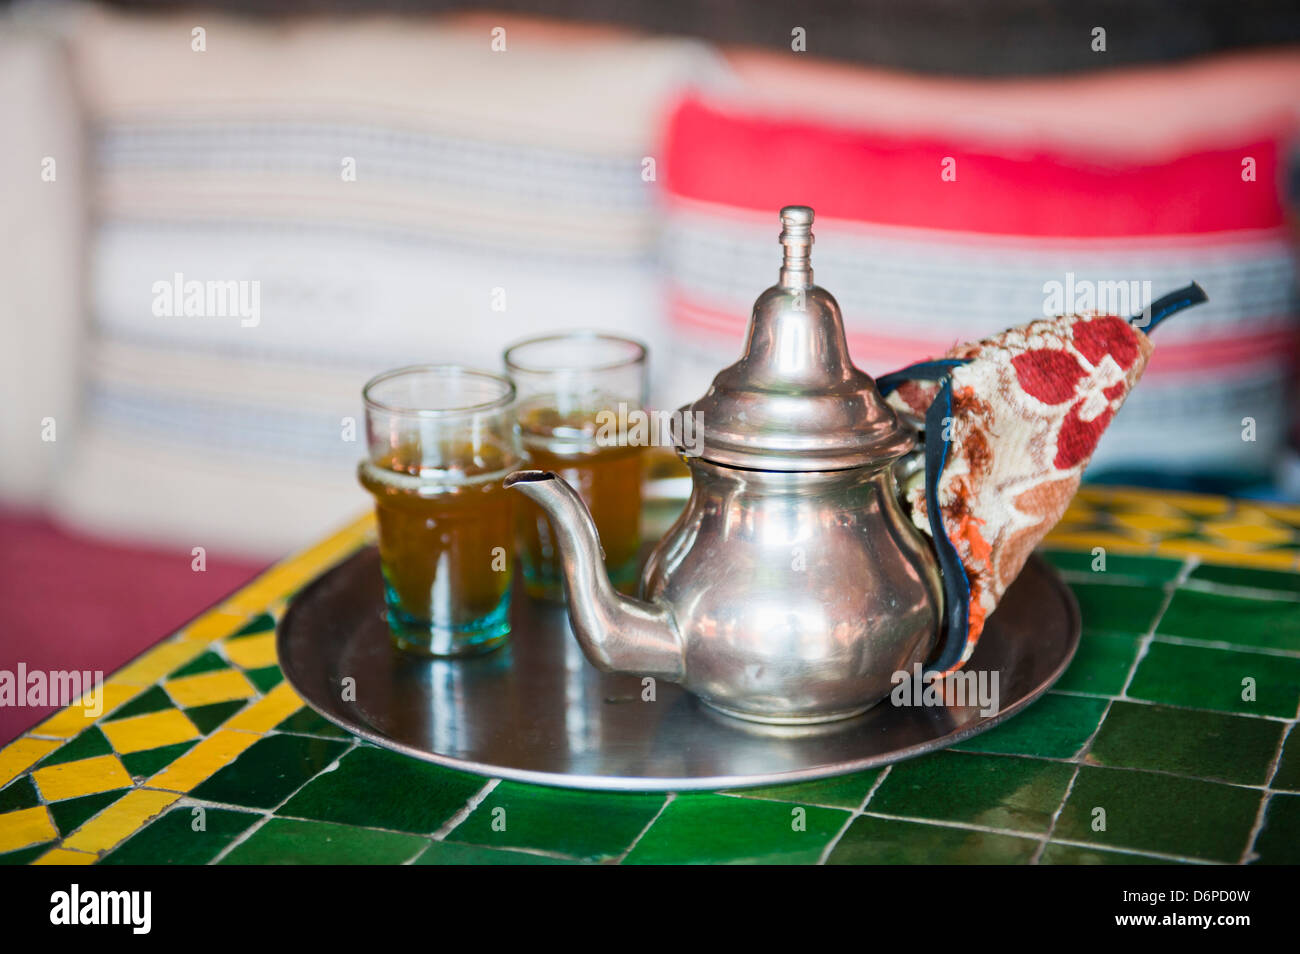 Moroccan mint tea pot at a cafe in Marrakech, Morocco, North Africa, Africa - Stock Image